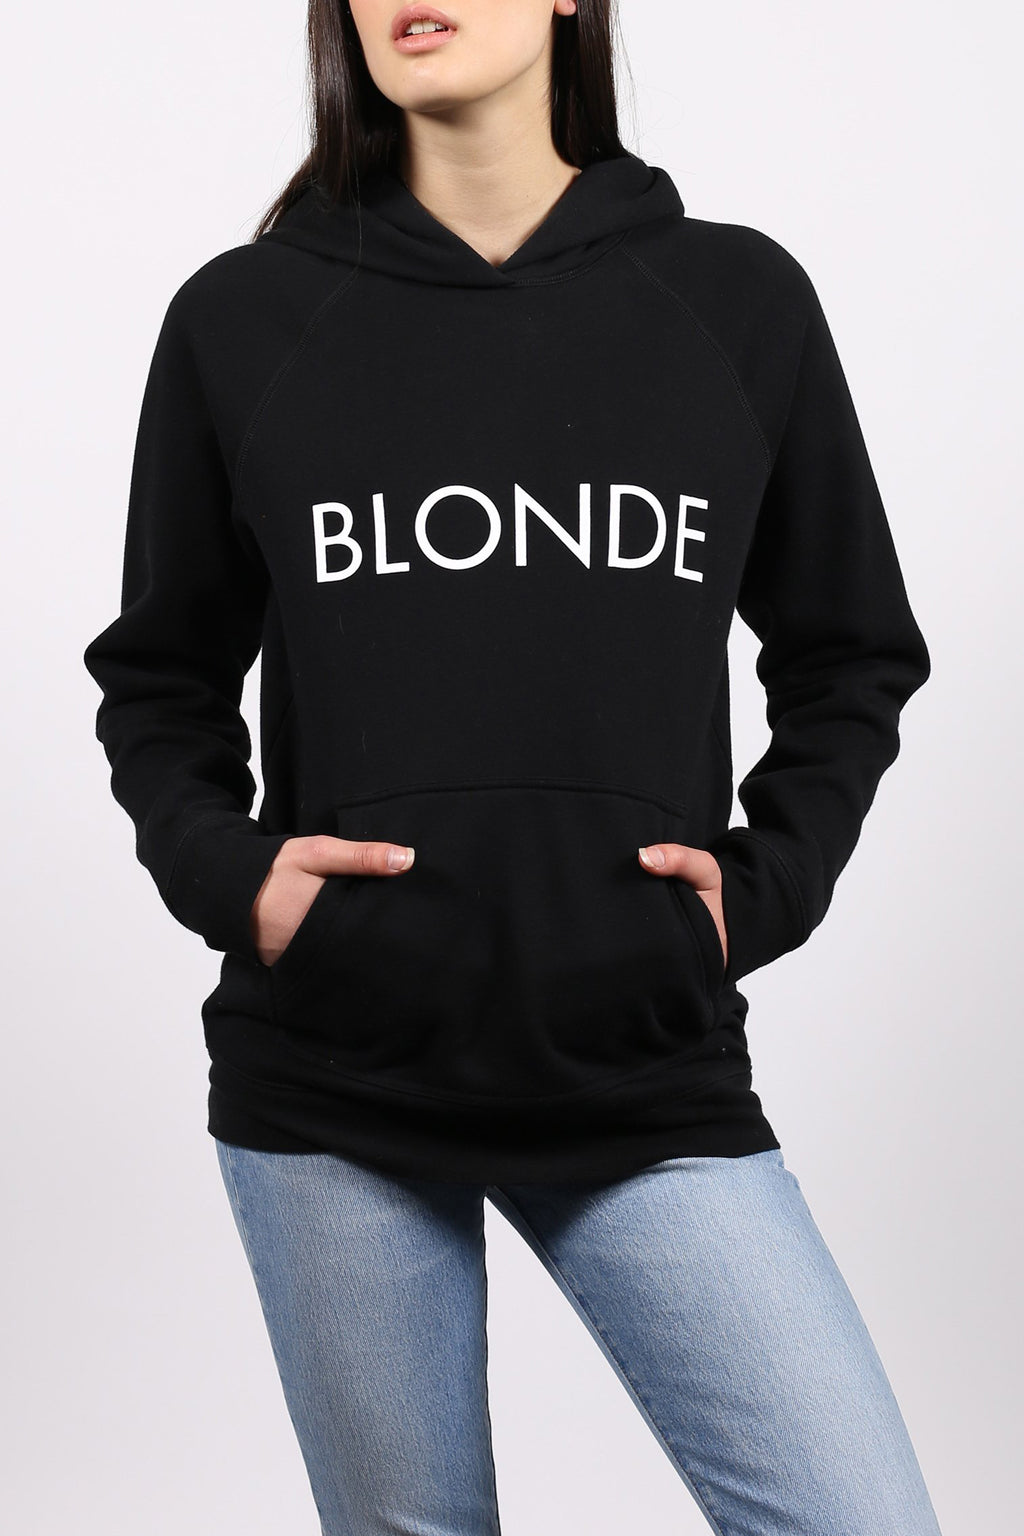 The Blonde Classic Hoodie - honey